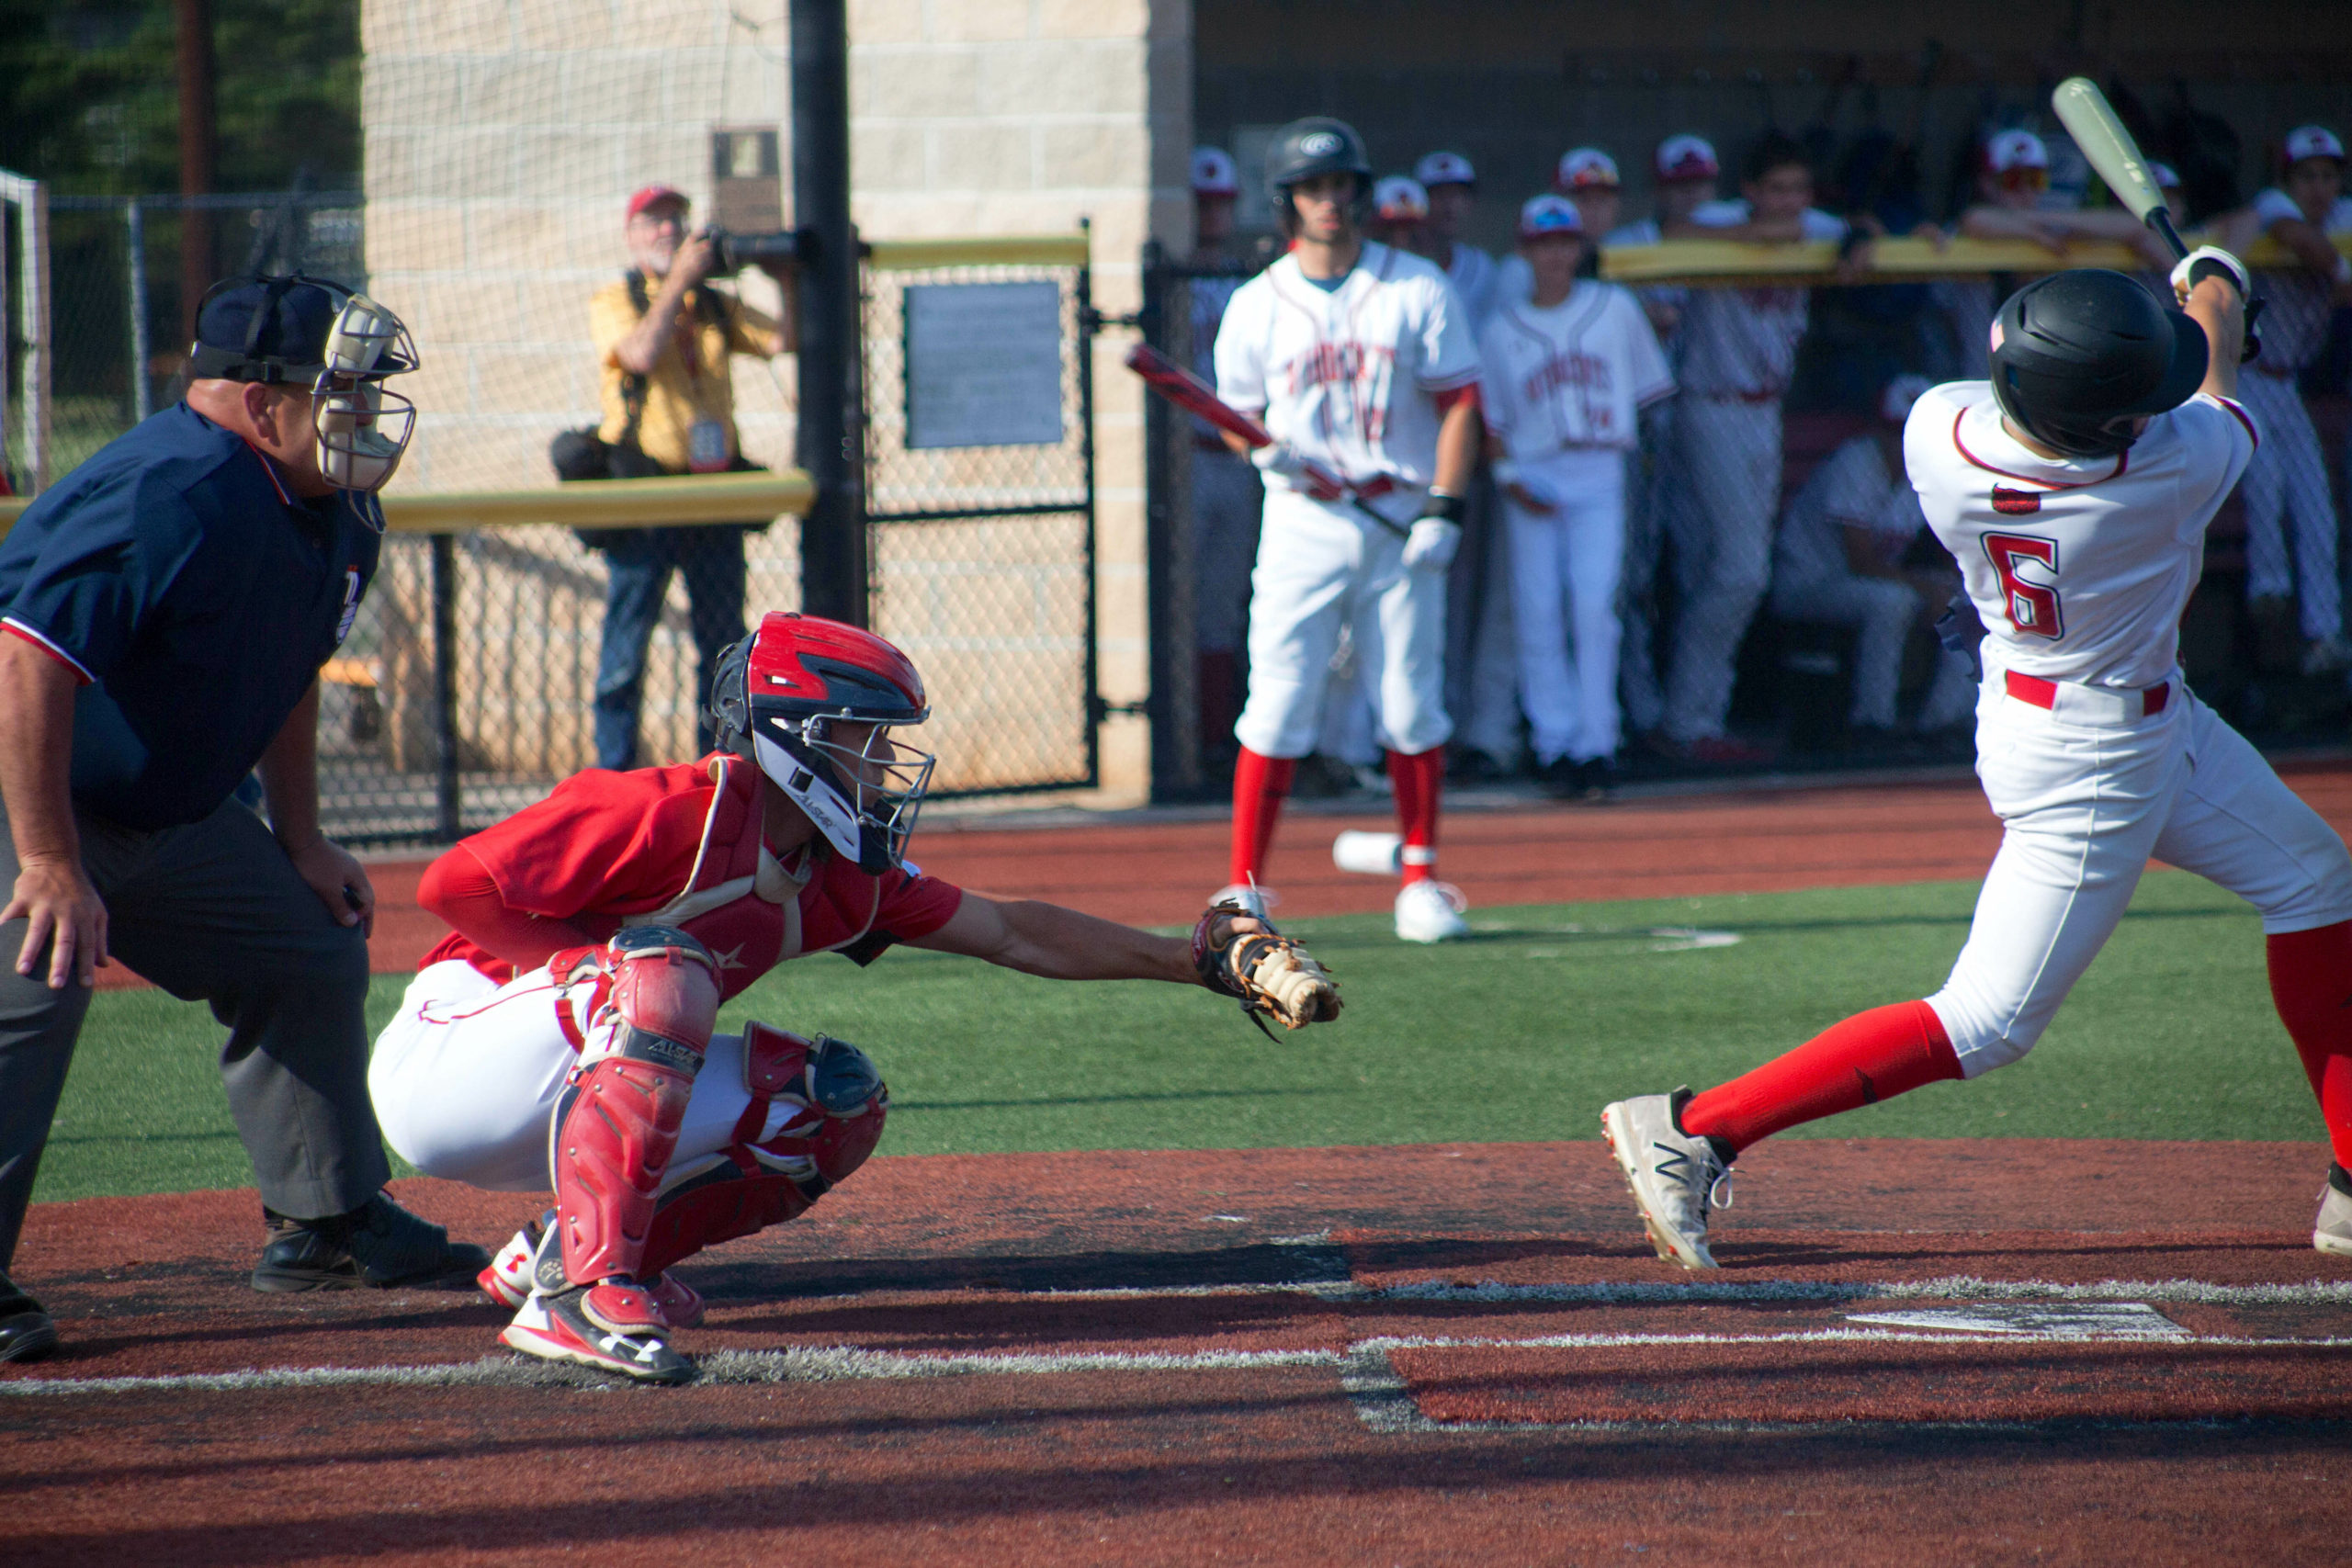 Pierson senior Tucker Schiavoni threw out two Wheatley runners attempting to steal second base in the Long Island Championship game at the Mitchel Athletic Complex in Uniondale.